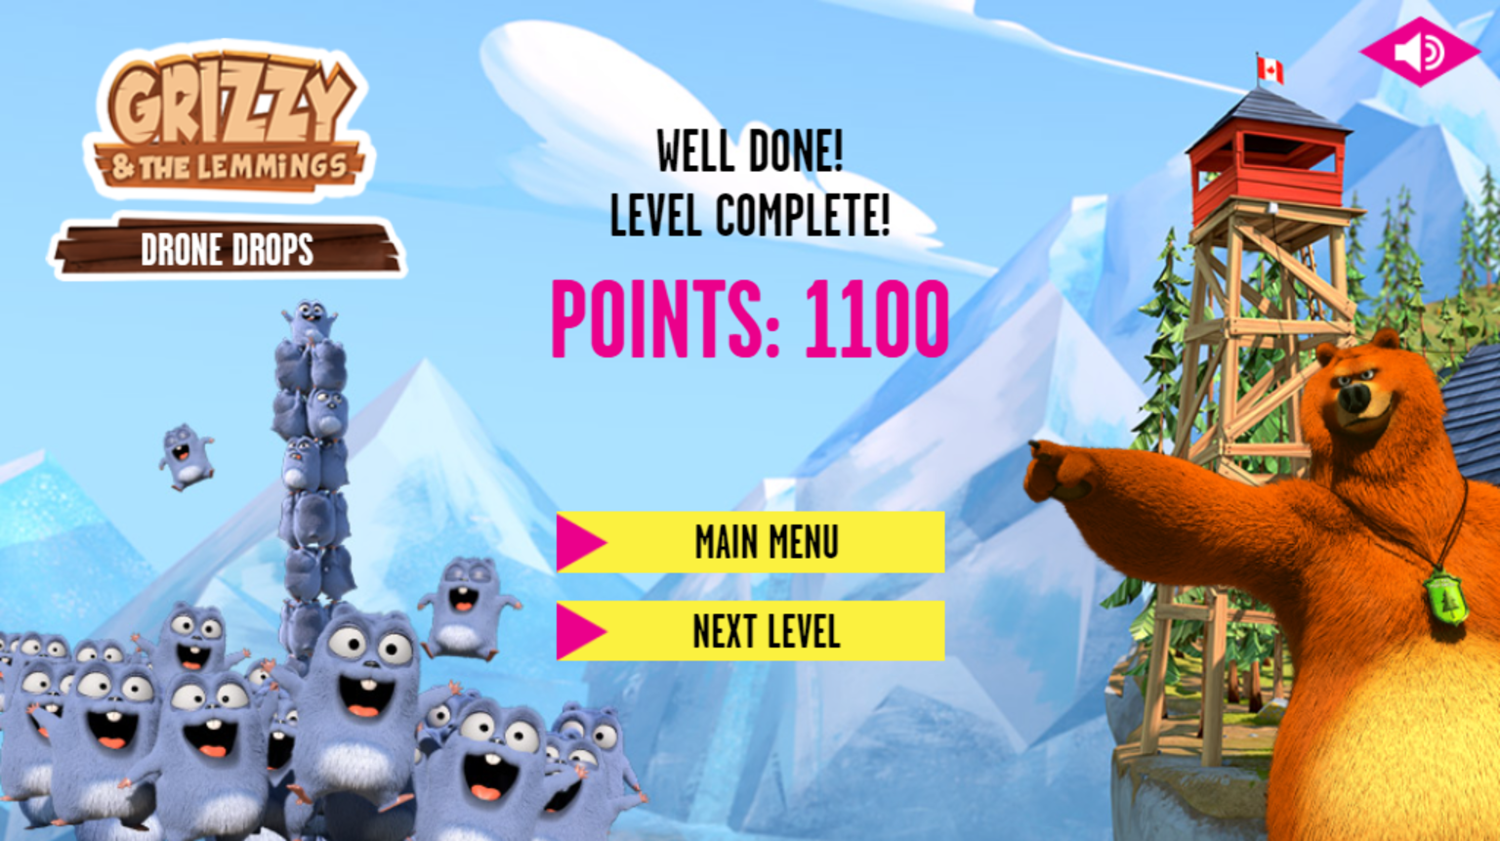 Grizzy and the Lemmings Drone Drops Game Level Complete Screenshot.